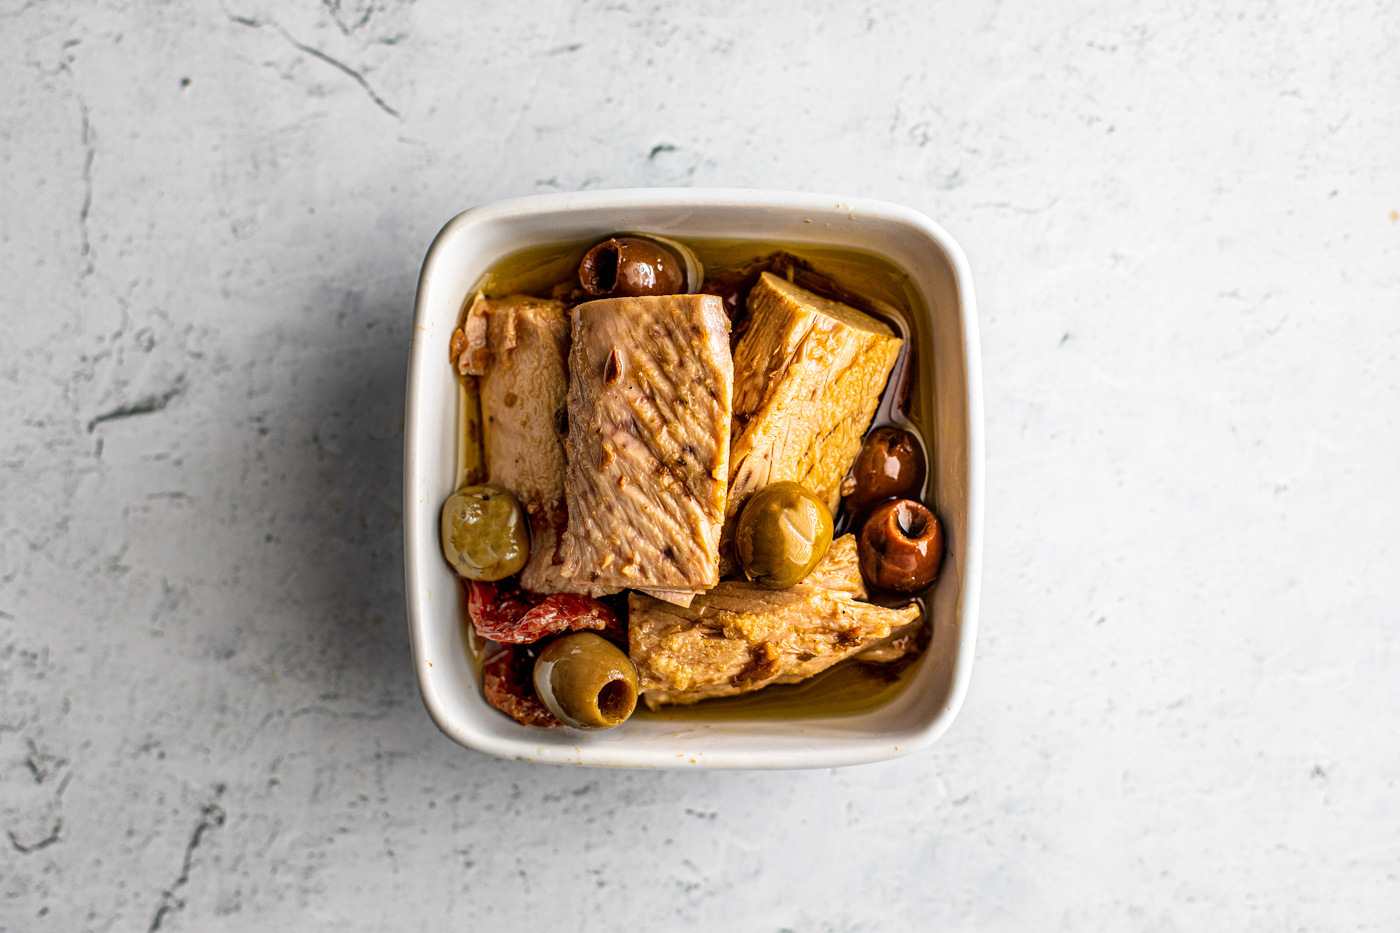 Overhead shot of big tuna fillets in a small serving dish with green and kalamata olives, oil, and sun-dried tomatoes.